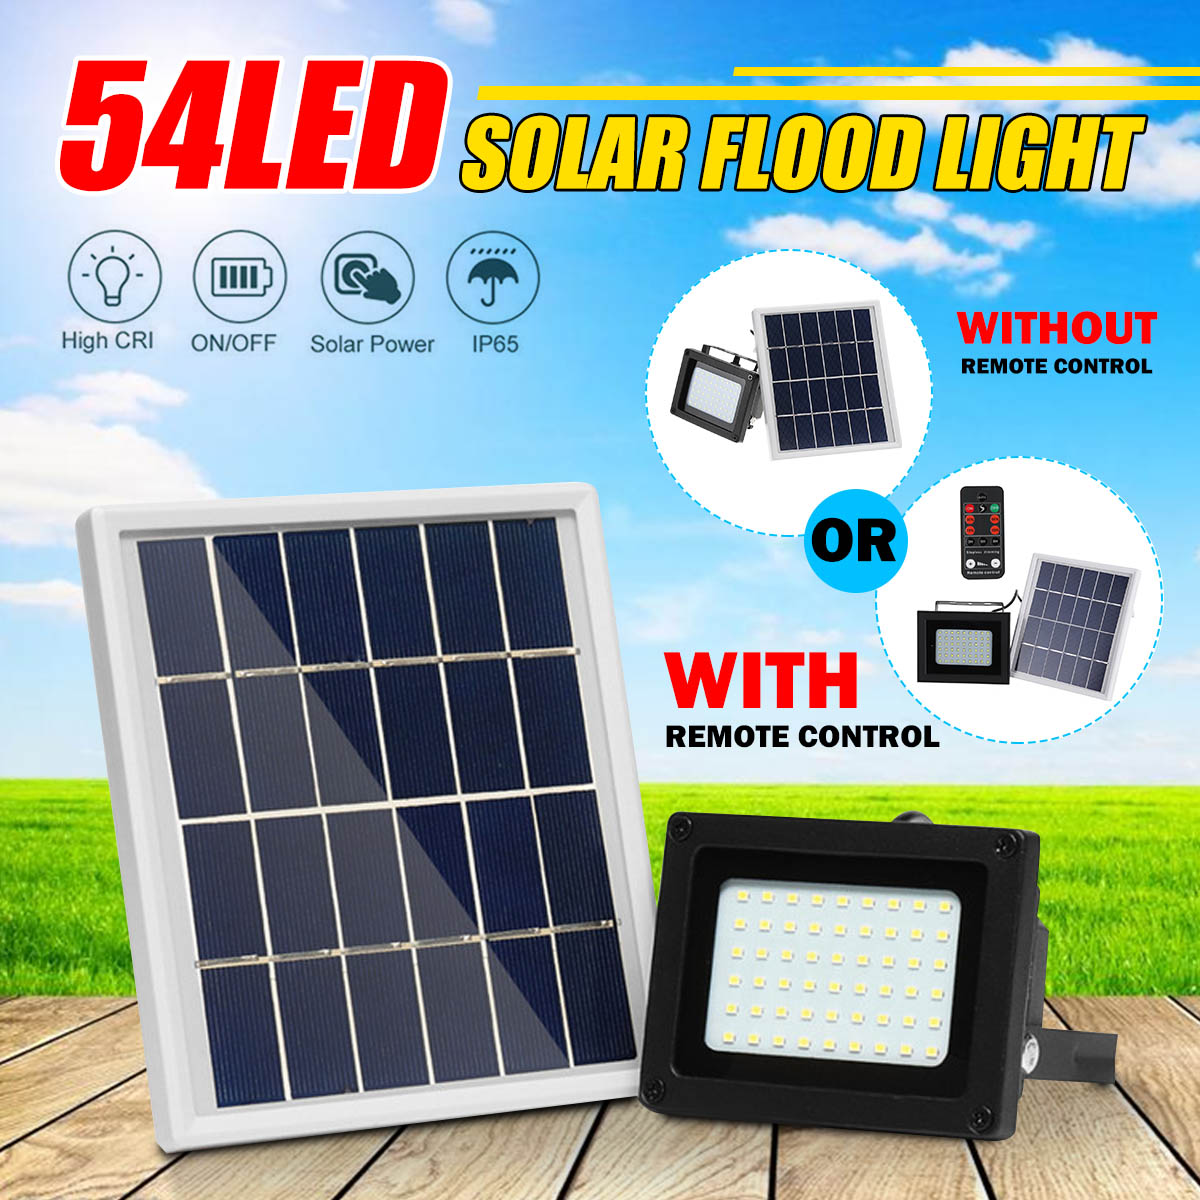 10W 54LED Solar Flood Light Sensor Spotlight IP65 Waterproof Outdoor Lamp Security Yard Garden Wall Lamps Solar Night Lighting